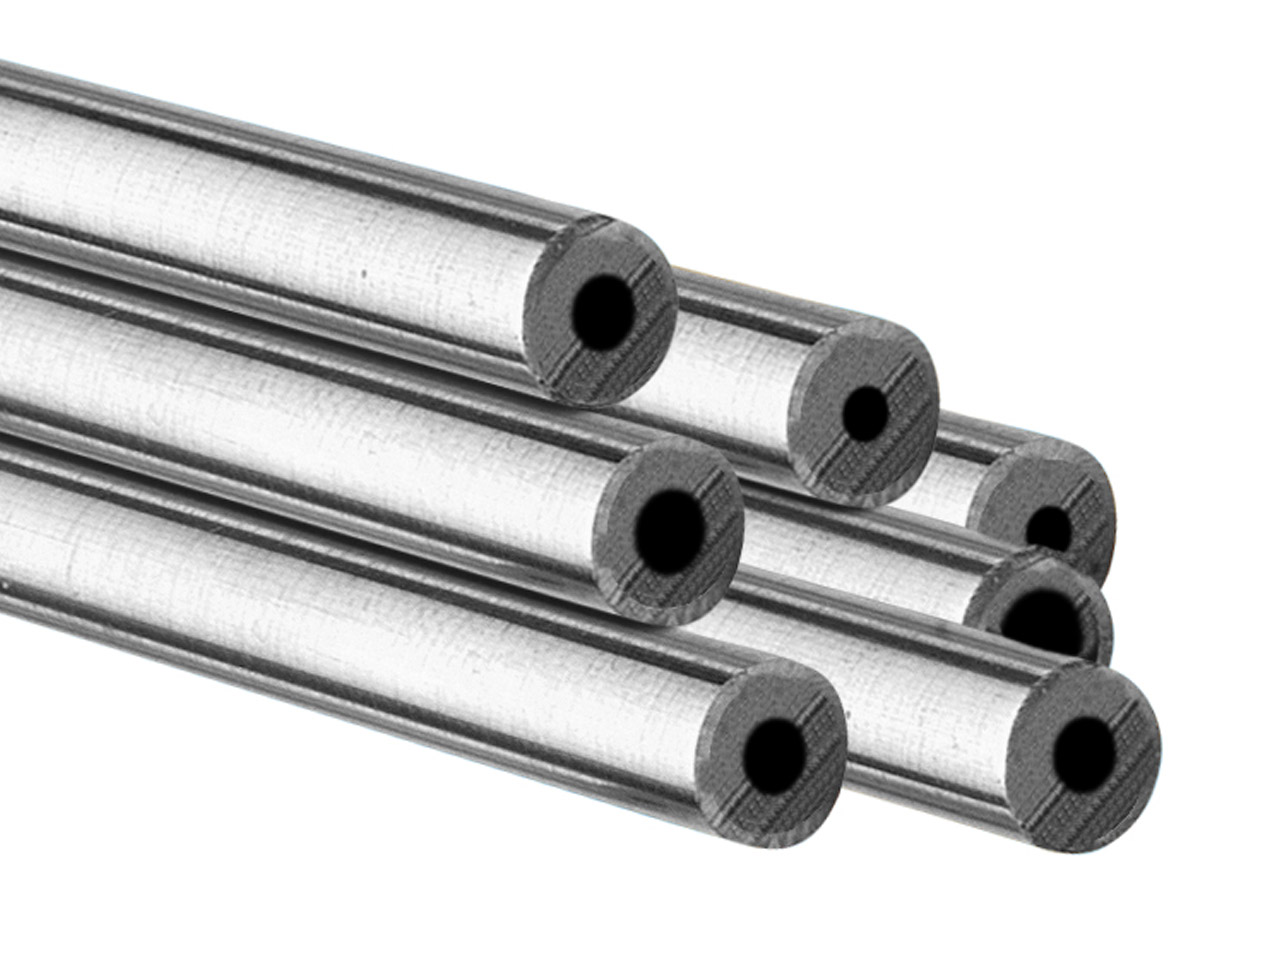 Sterling Silver Jt Tube,            Outside Diameter 4.75mm,            Inside Diameter 1.25mm, 1.75mm Wall Thickness